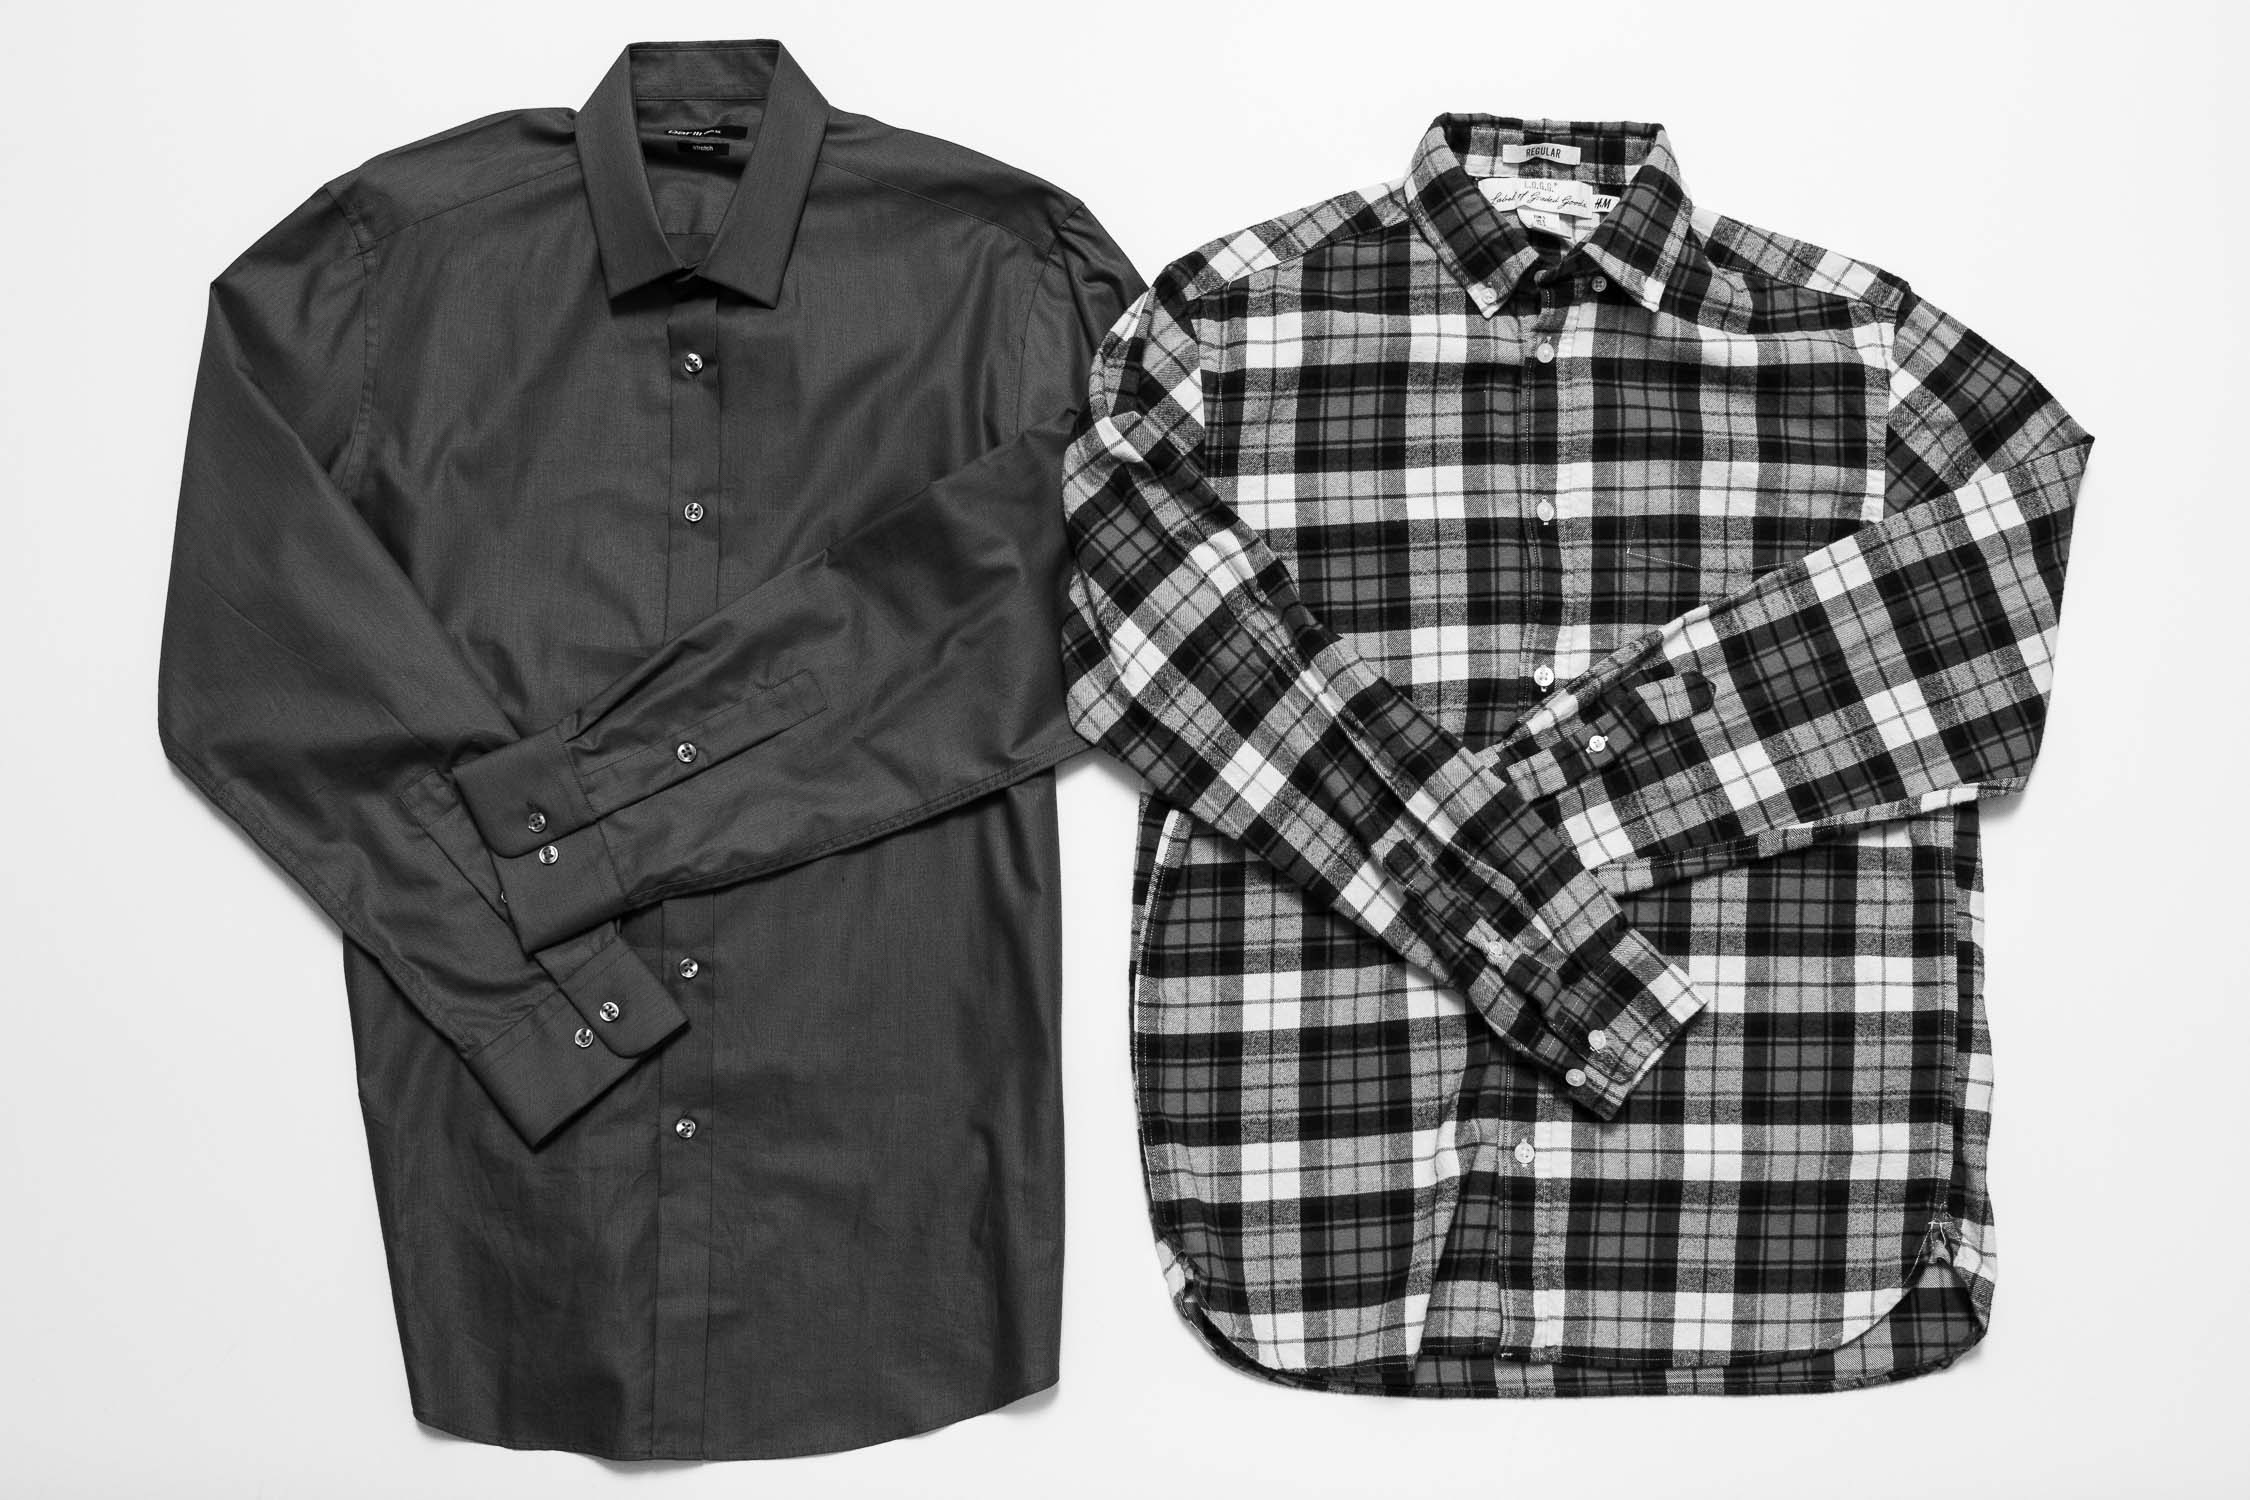 Black and white photo of two men's dress shirts